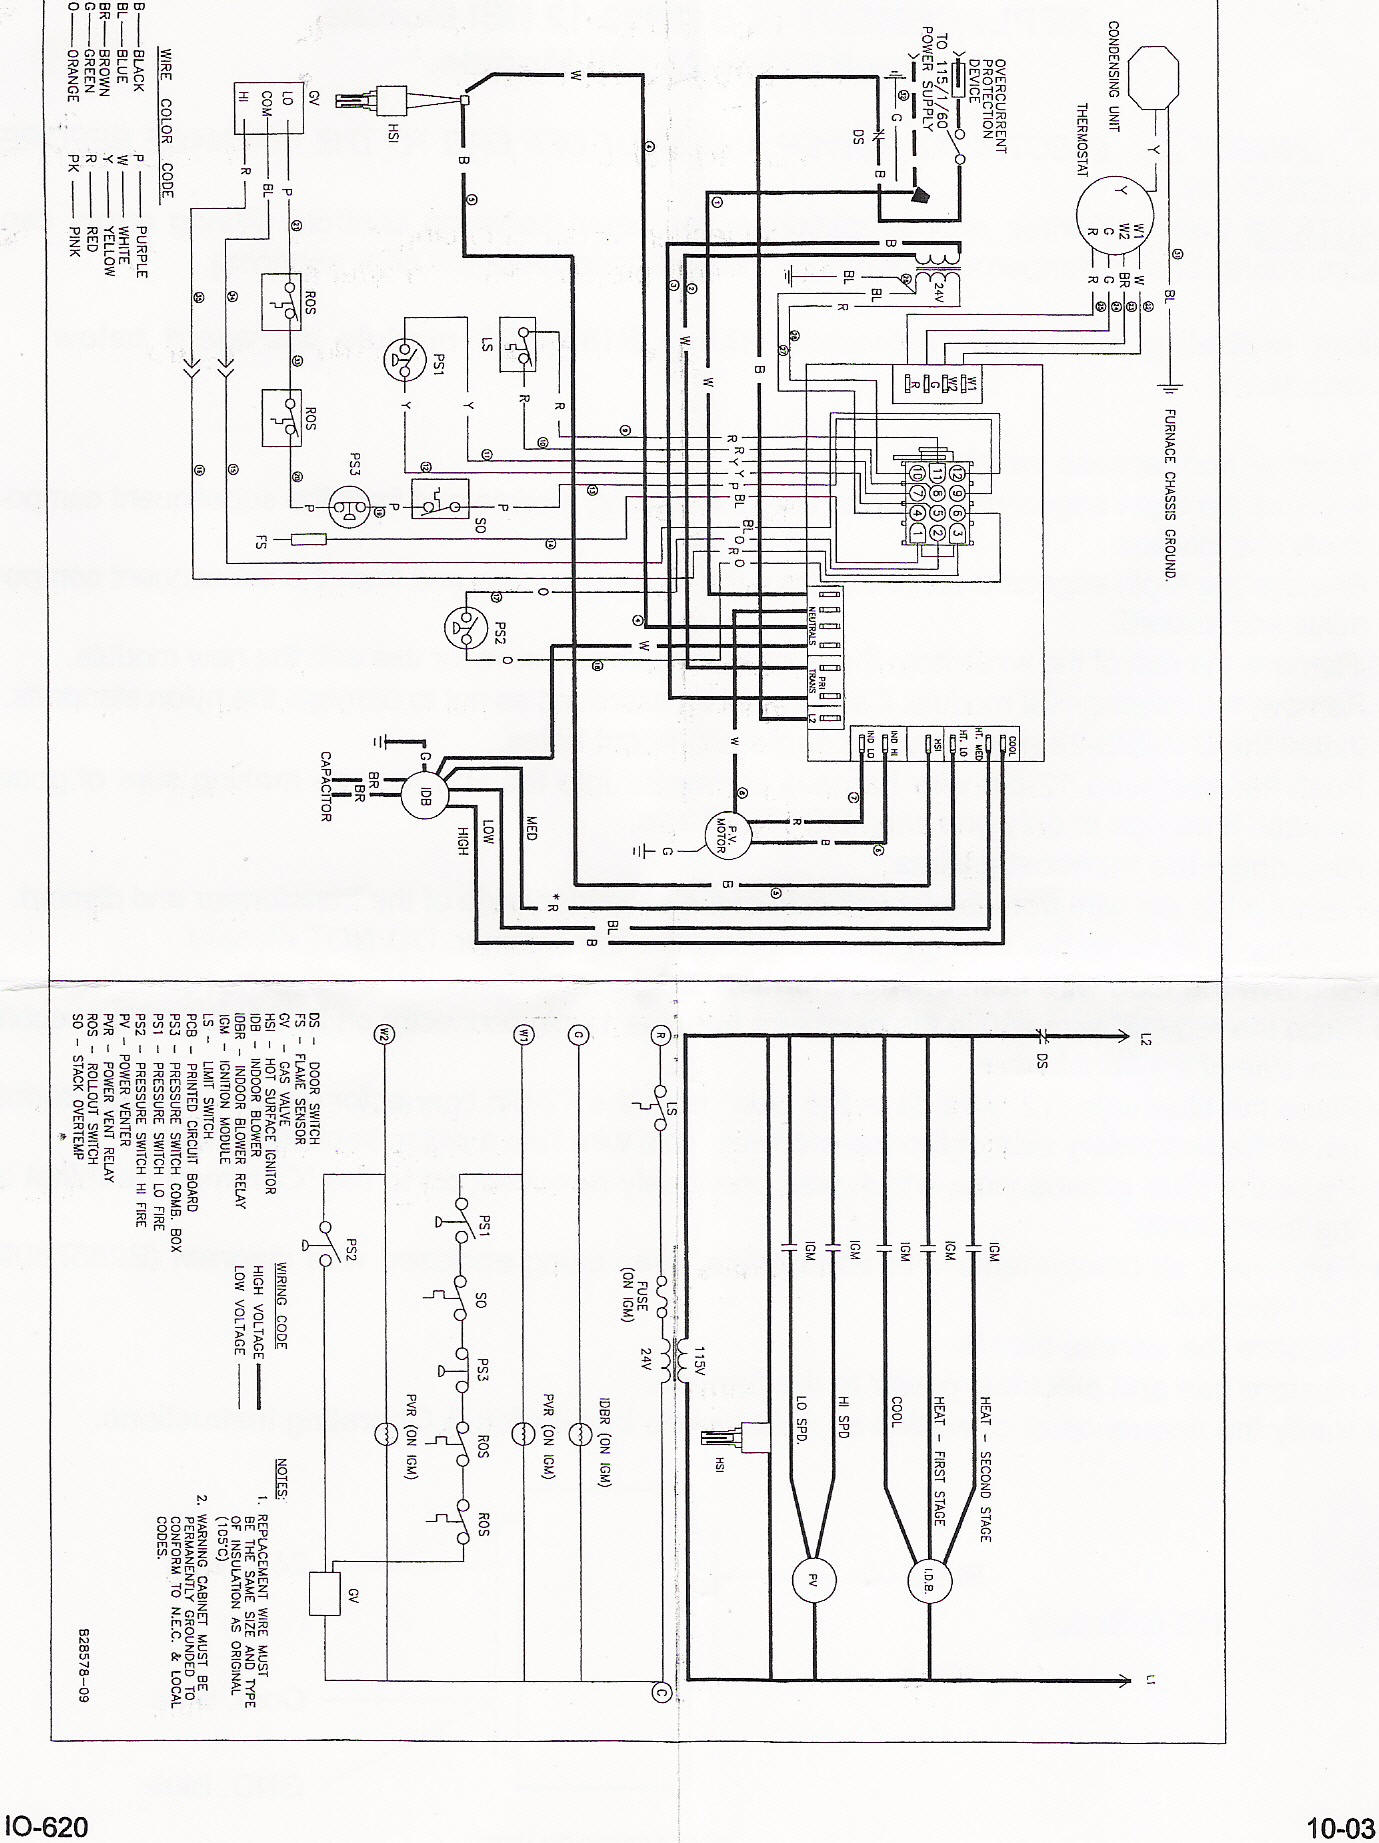 goodma2 instr goodman control board b18099 23 instructions trane economizer wiring diagram at bayanpartner.co